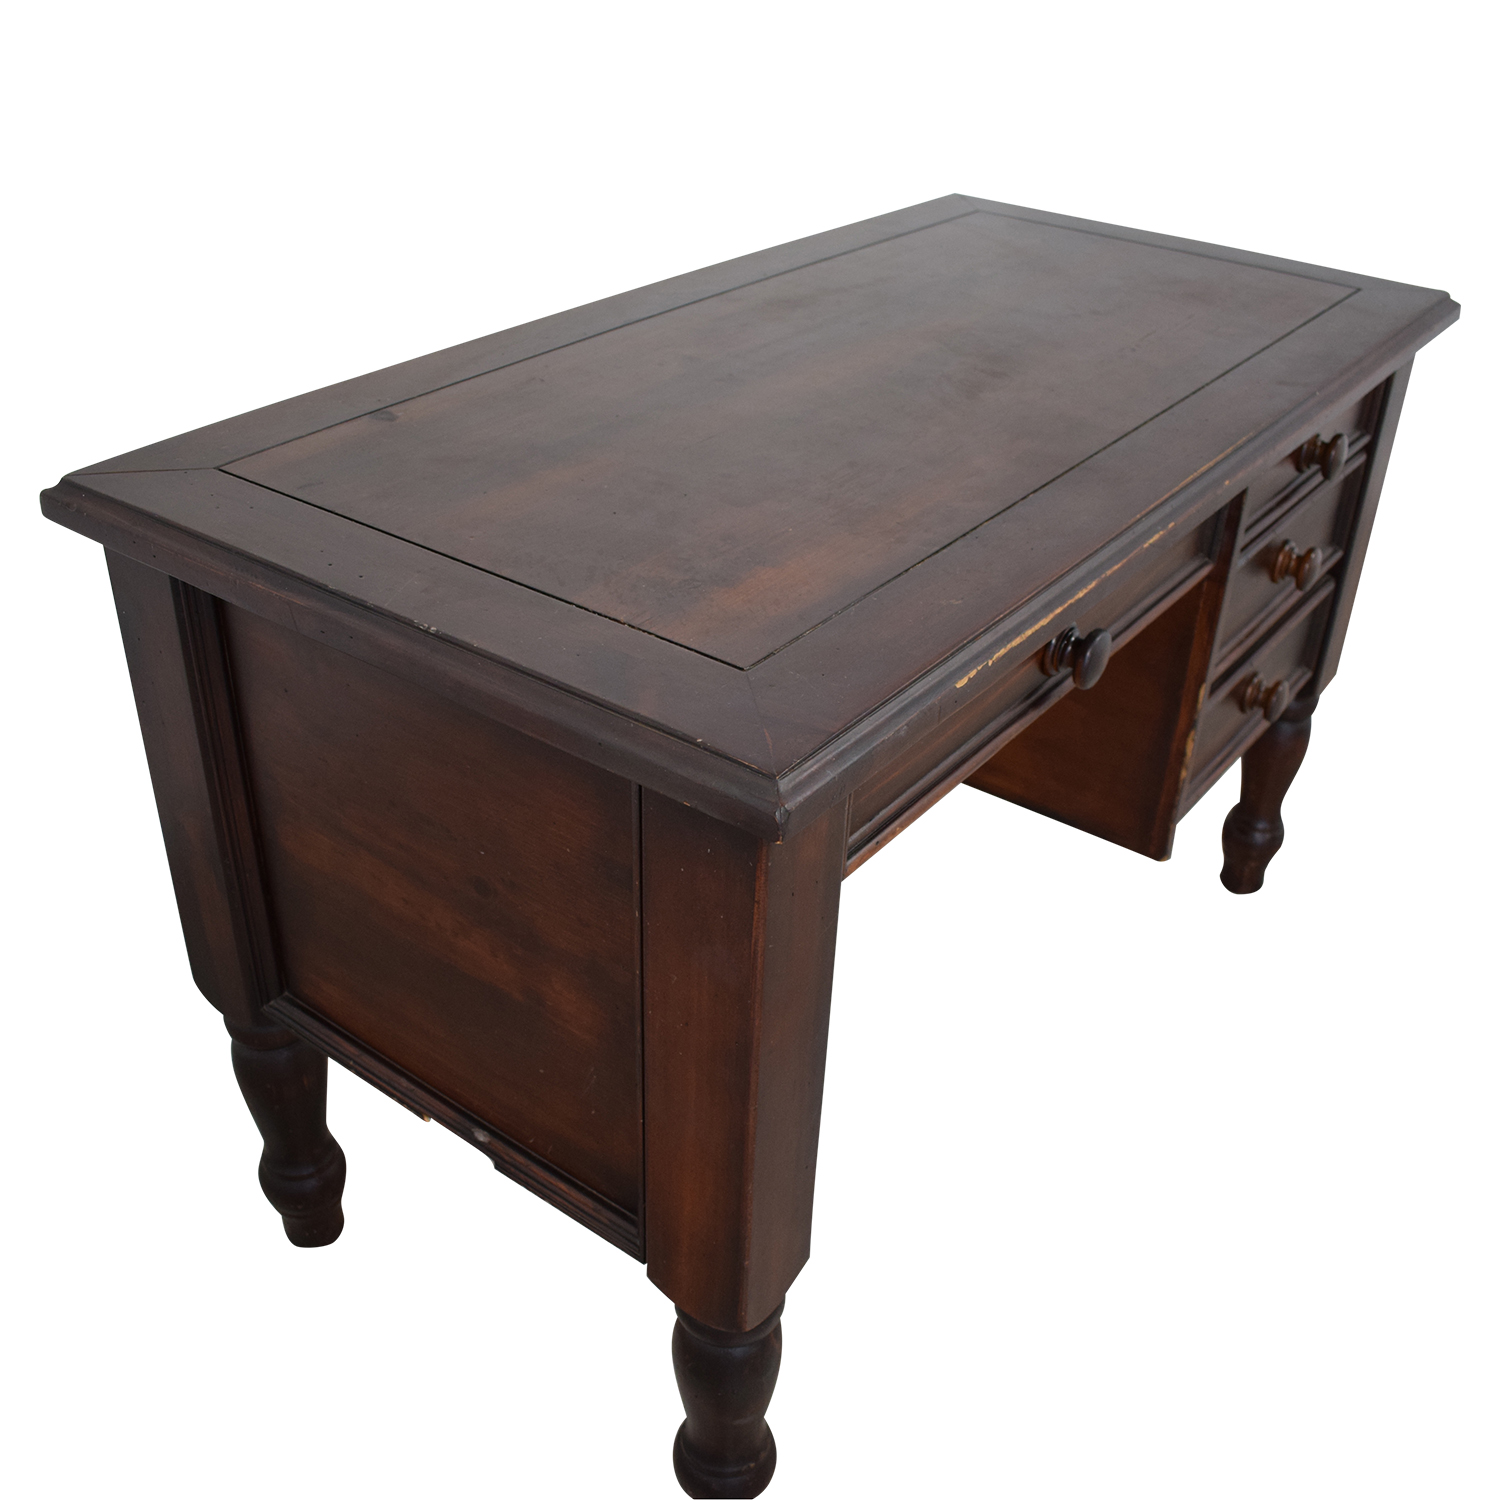 Pottery Barn Pottery Barn Desk with Three Drawers